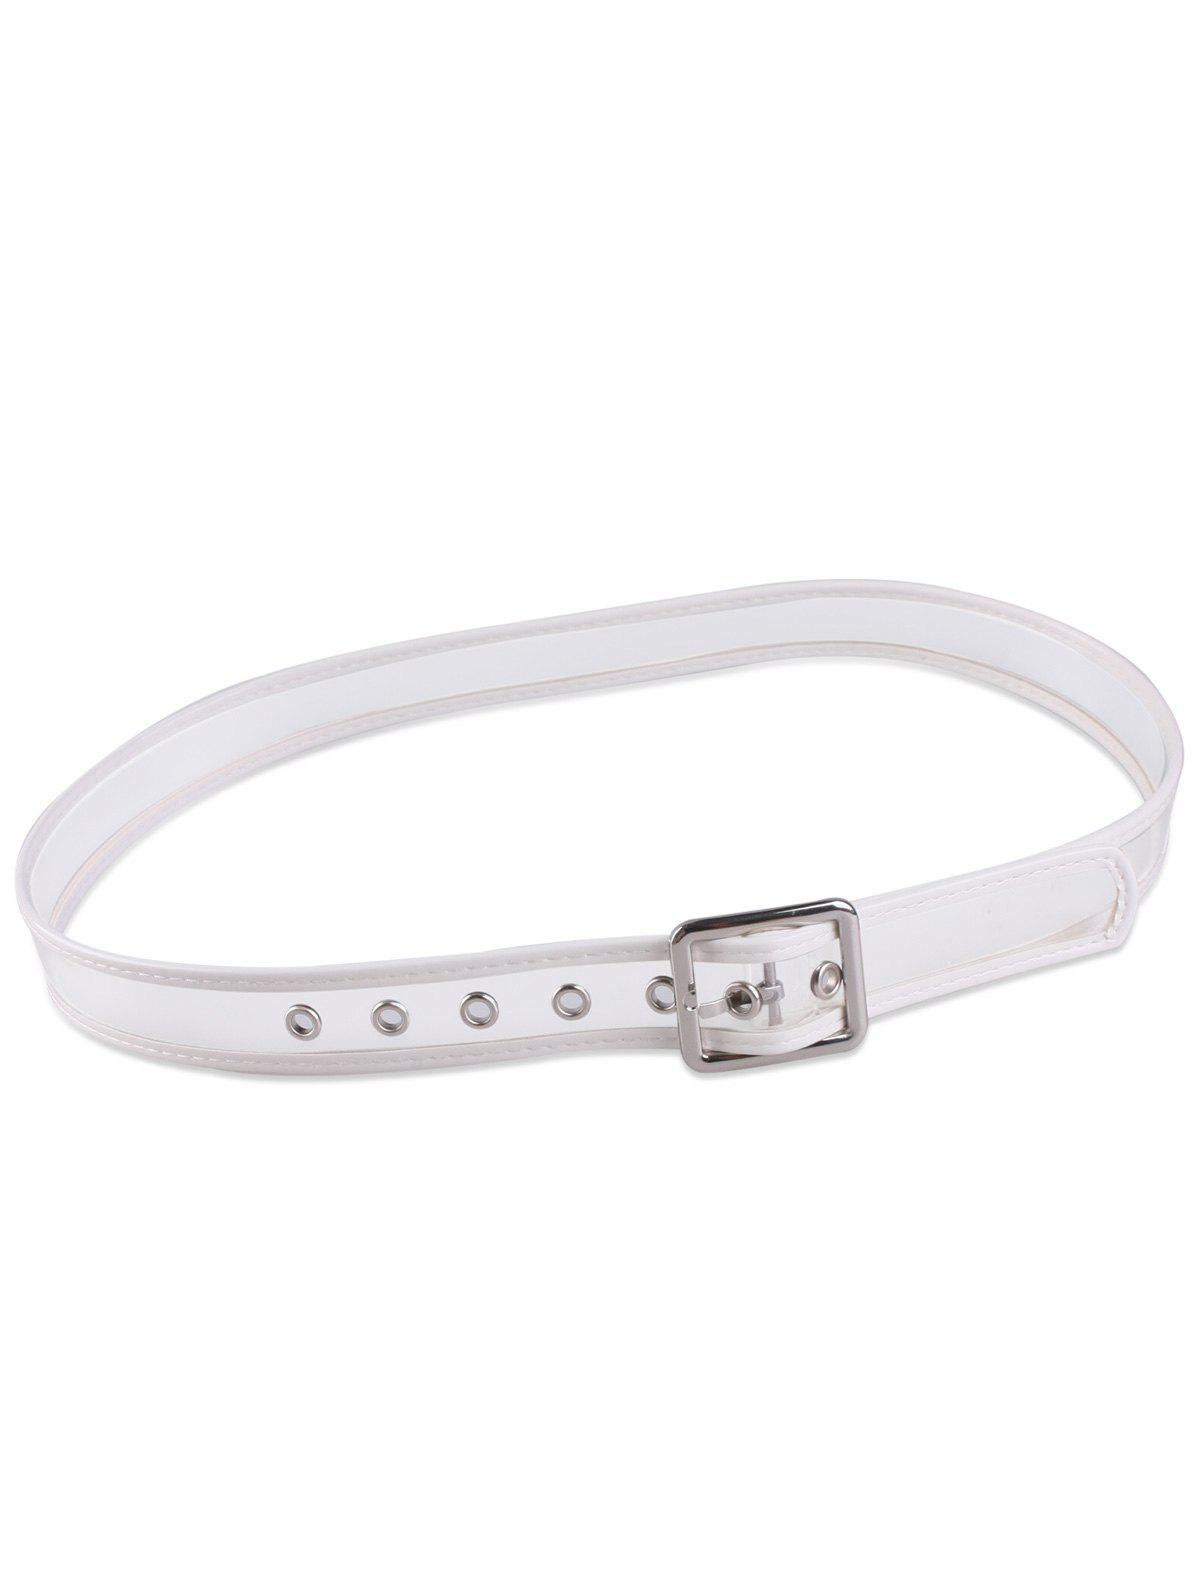 Candy Color Brim Transparent Pin Buckle Belt - Blanc